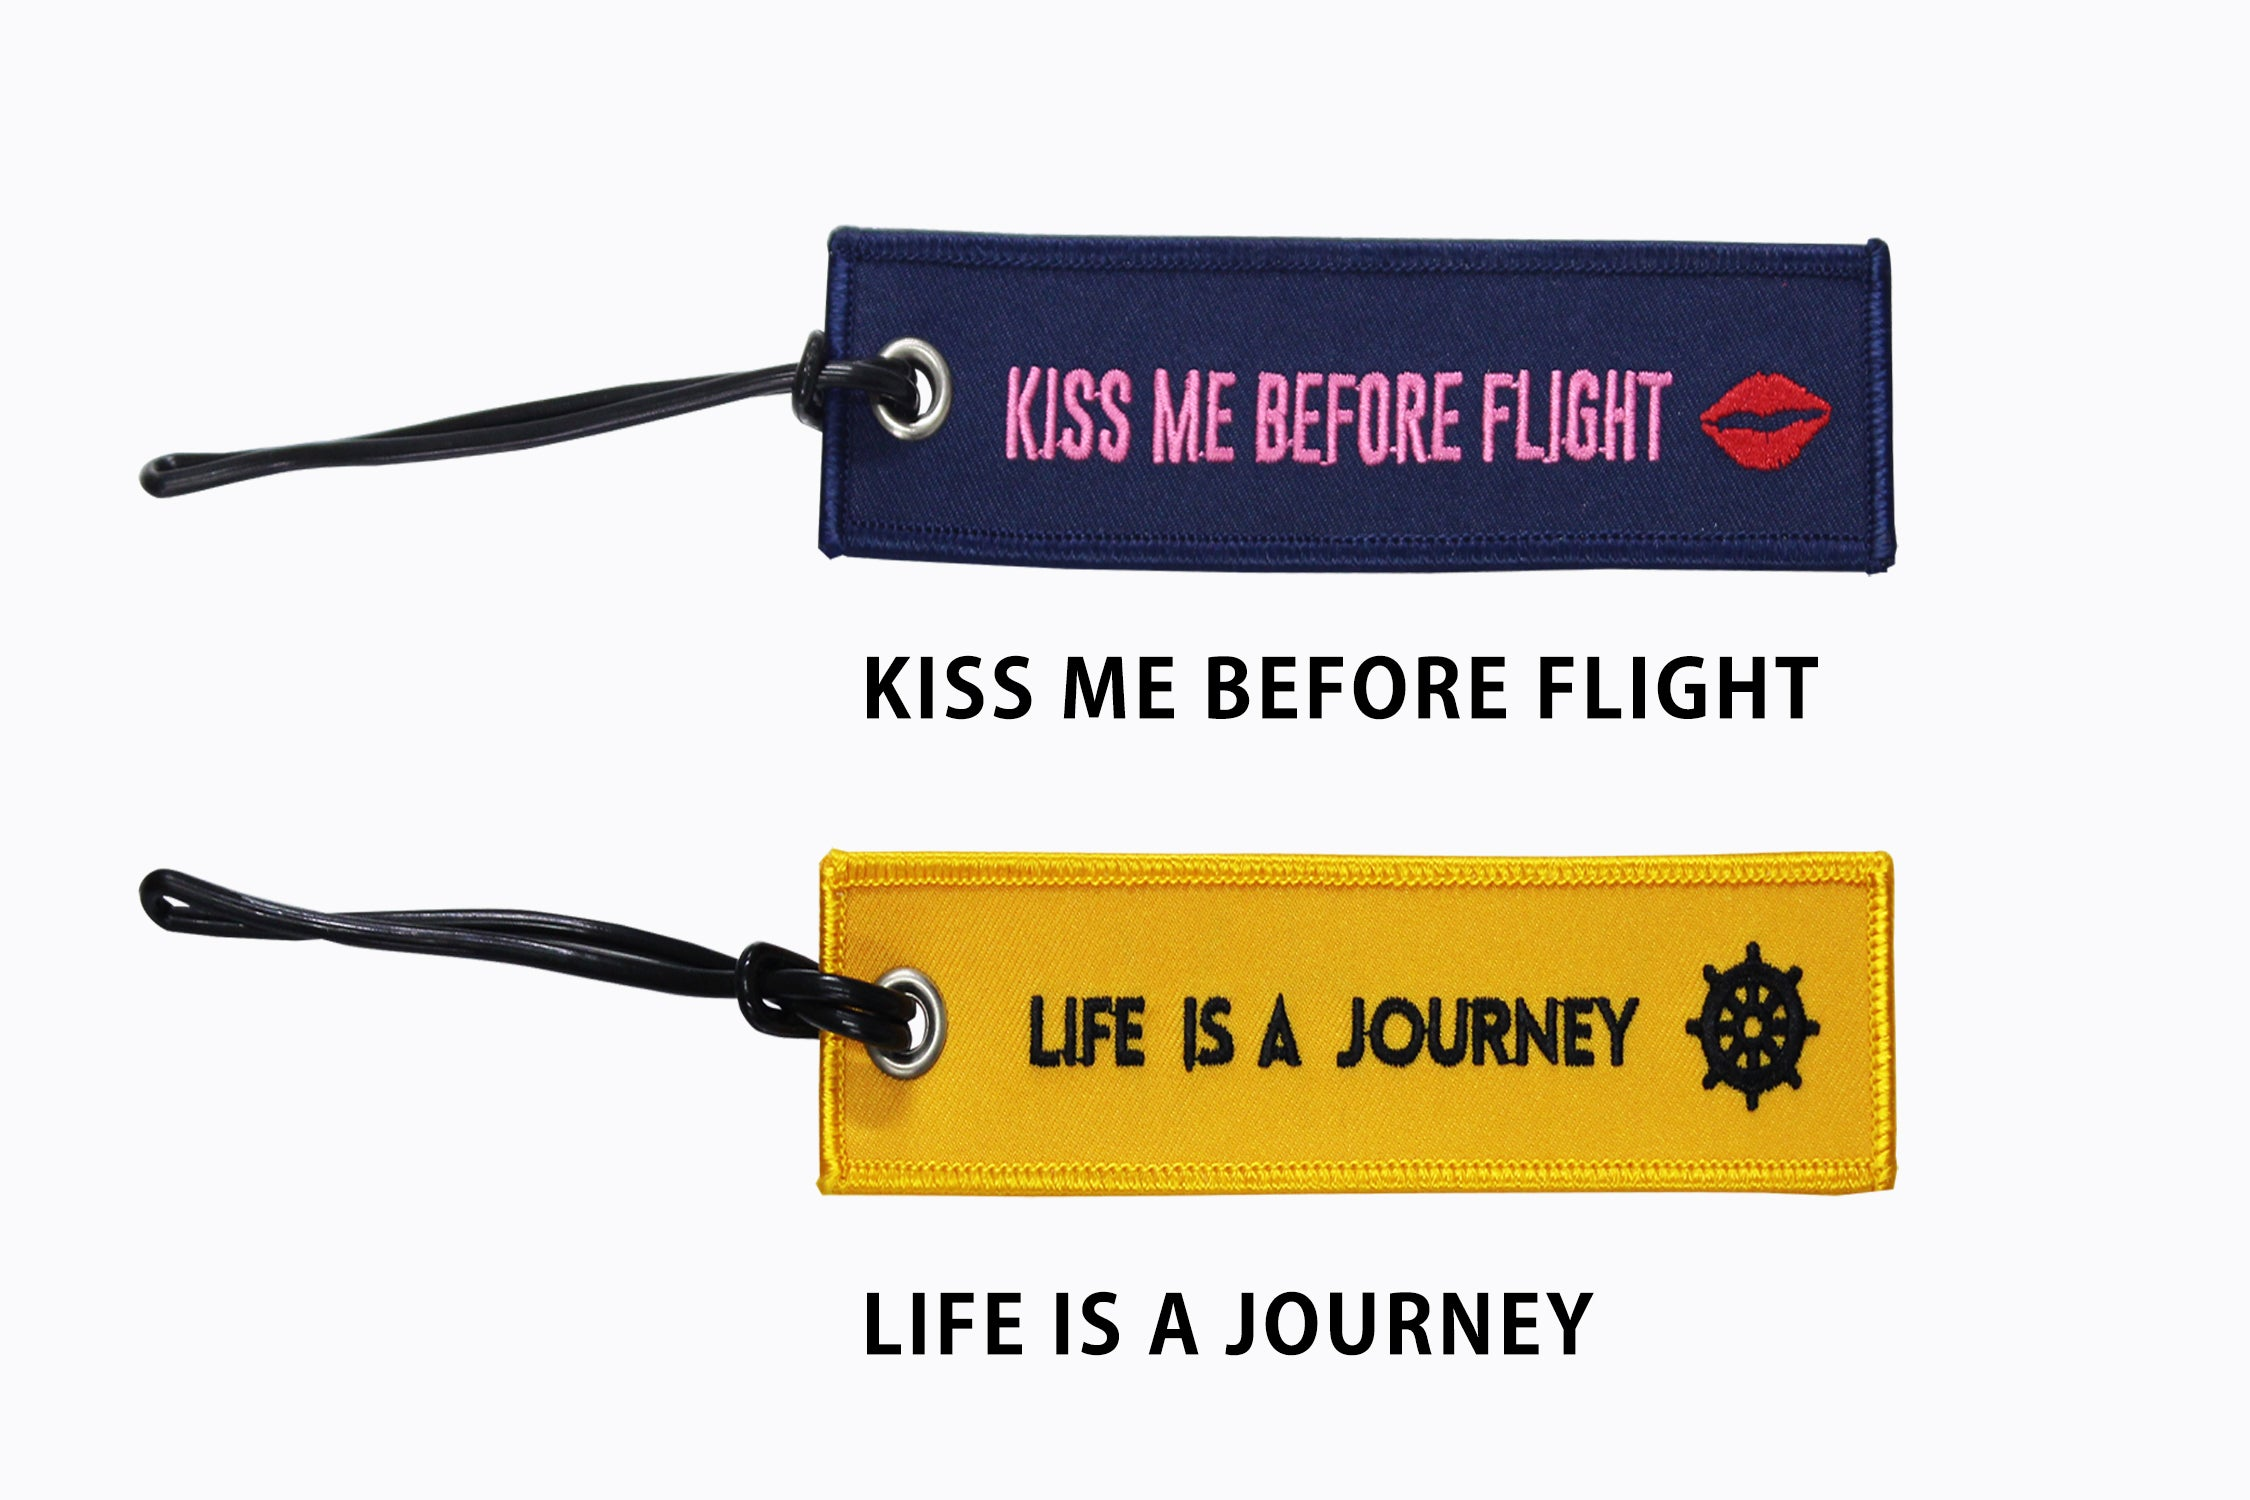 [Lucky Planet] Embroidered  Luggage Name Tags - Kiss Me Before Flight